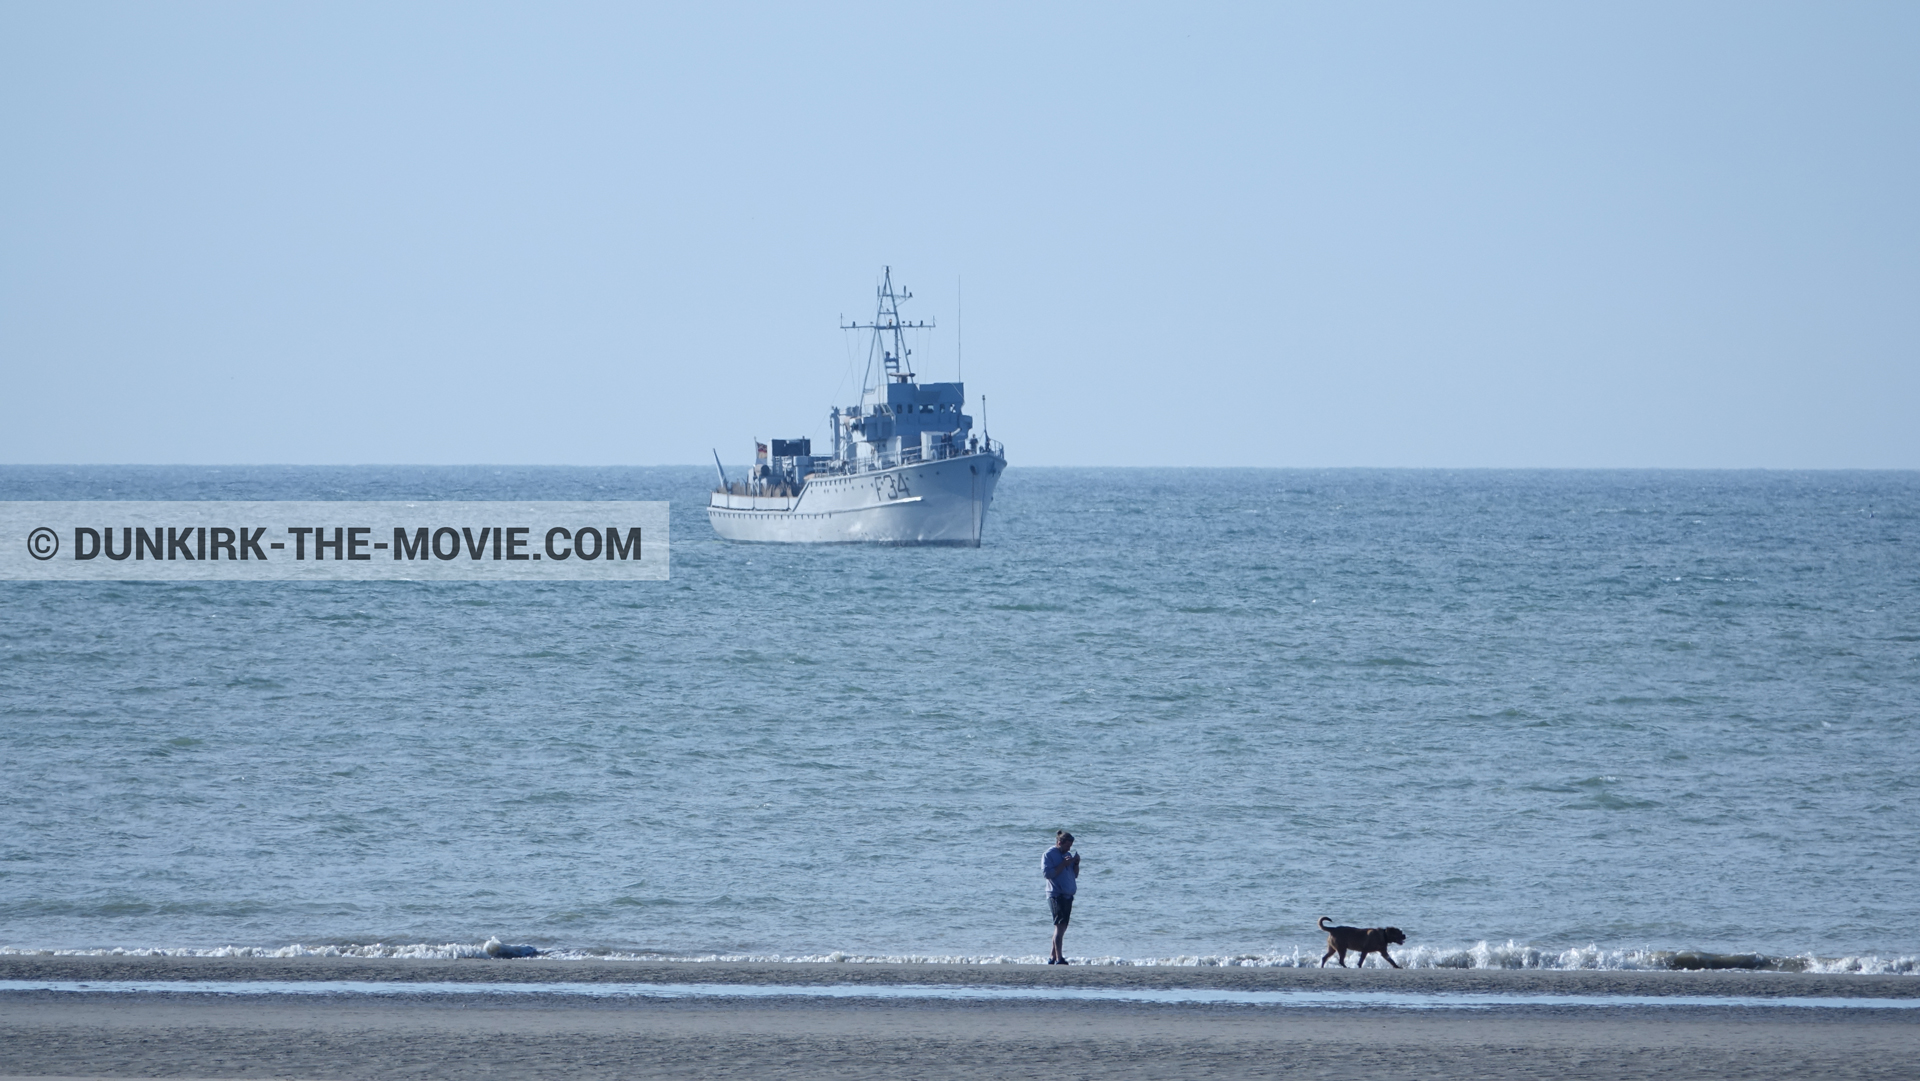 Picture with blue sky, F34 - Hr.Ms. Sittard, calm sea, beach,  from behind the scene of the Dunkirk movie by Nolan